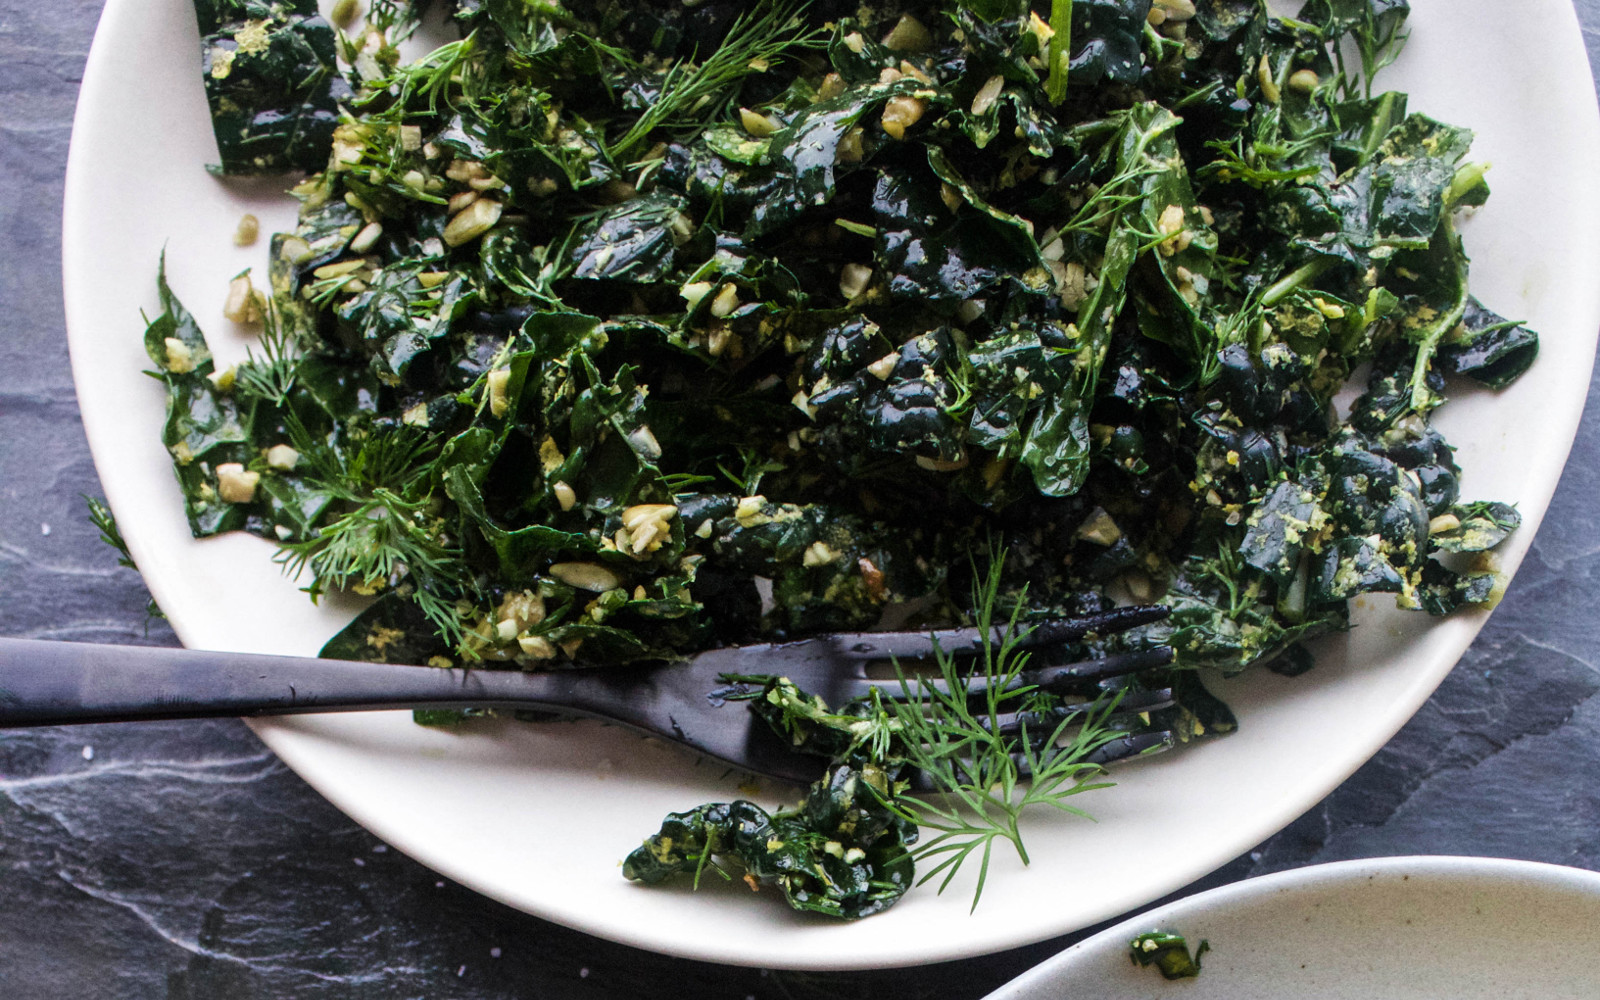 Vegan Herb and Garlic Massaged Kale Salad